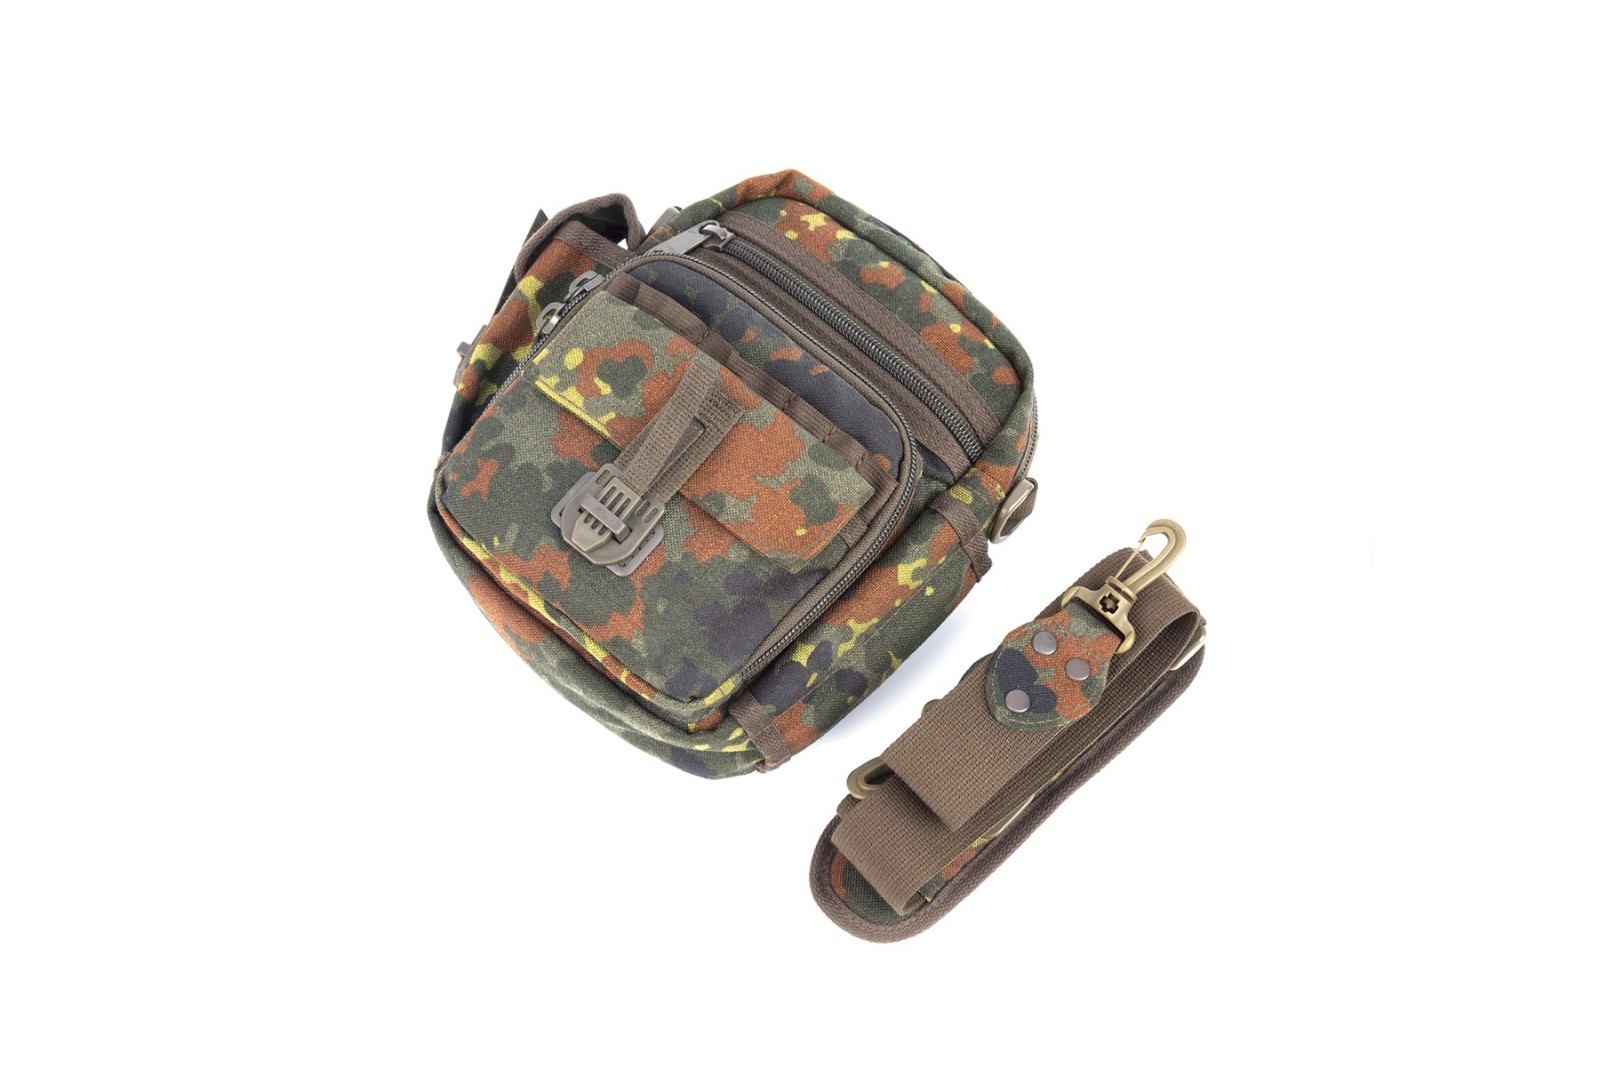 GF bags-Professional Military Gear Bags and Tactical Pouch Bag From GF Bags